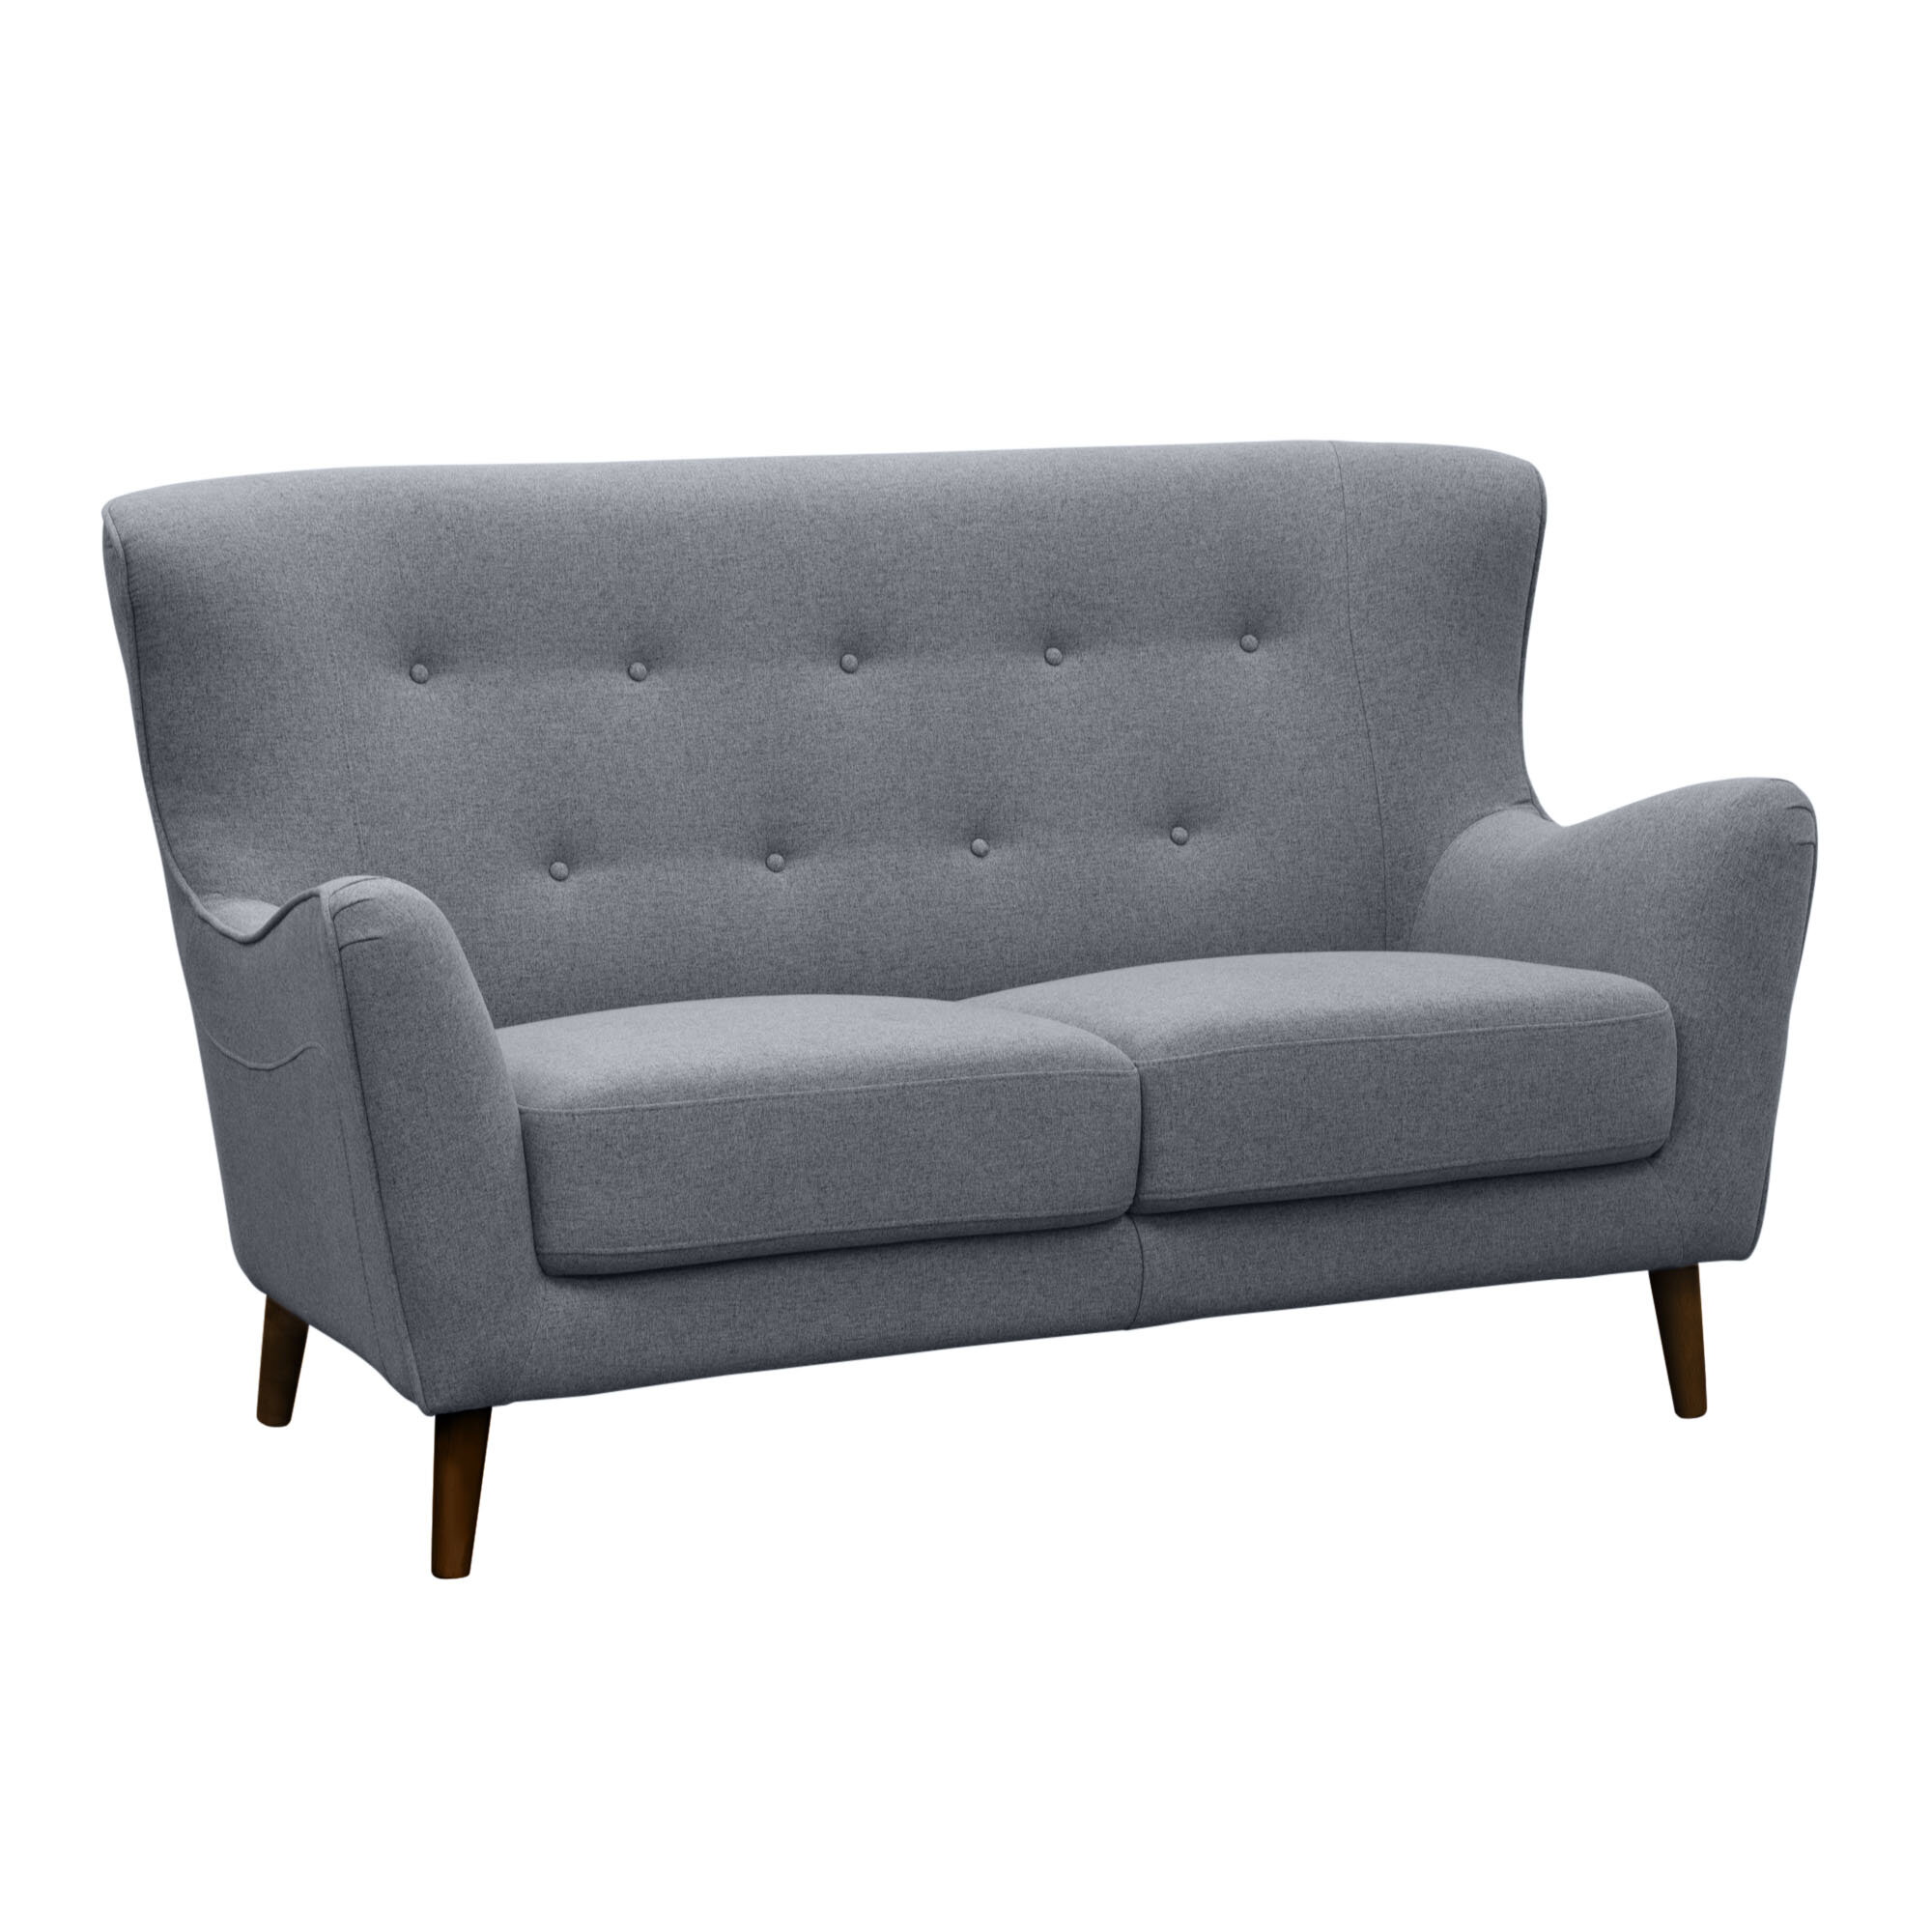 loveseat furniture kiss velvet download retro table sofa chair couch